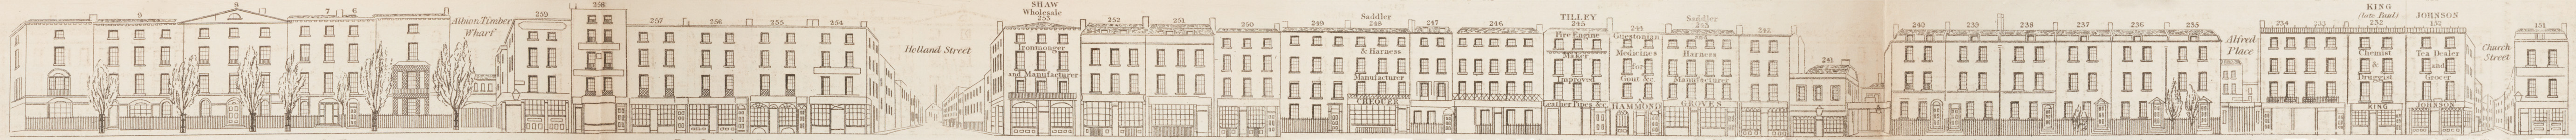 map - Tallis's London street views : No. 57. Blackfriars Road, division 1 (east)